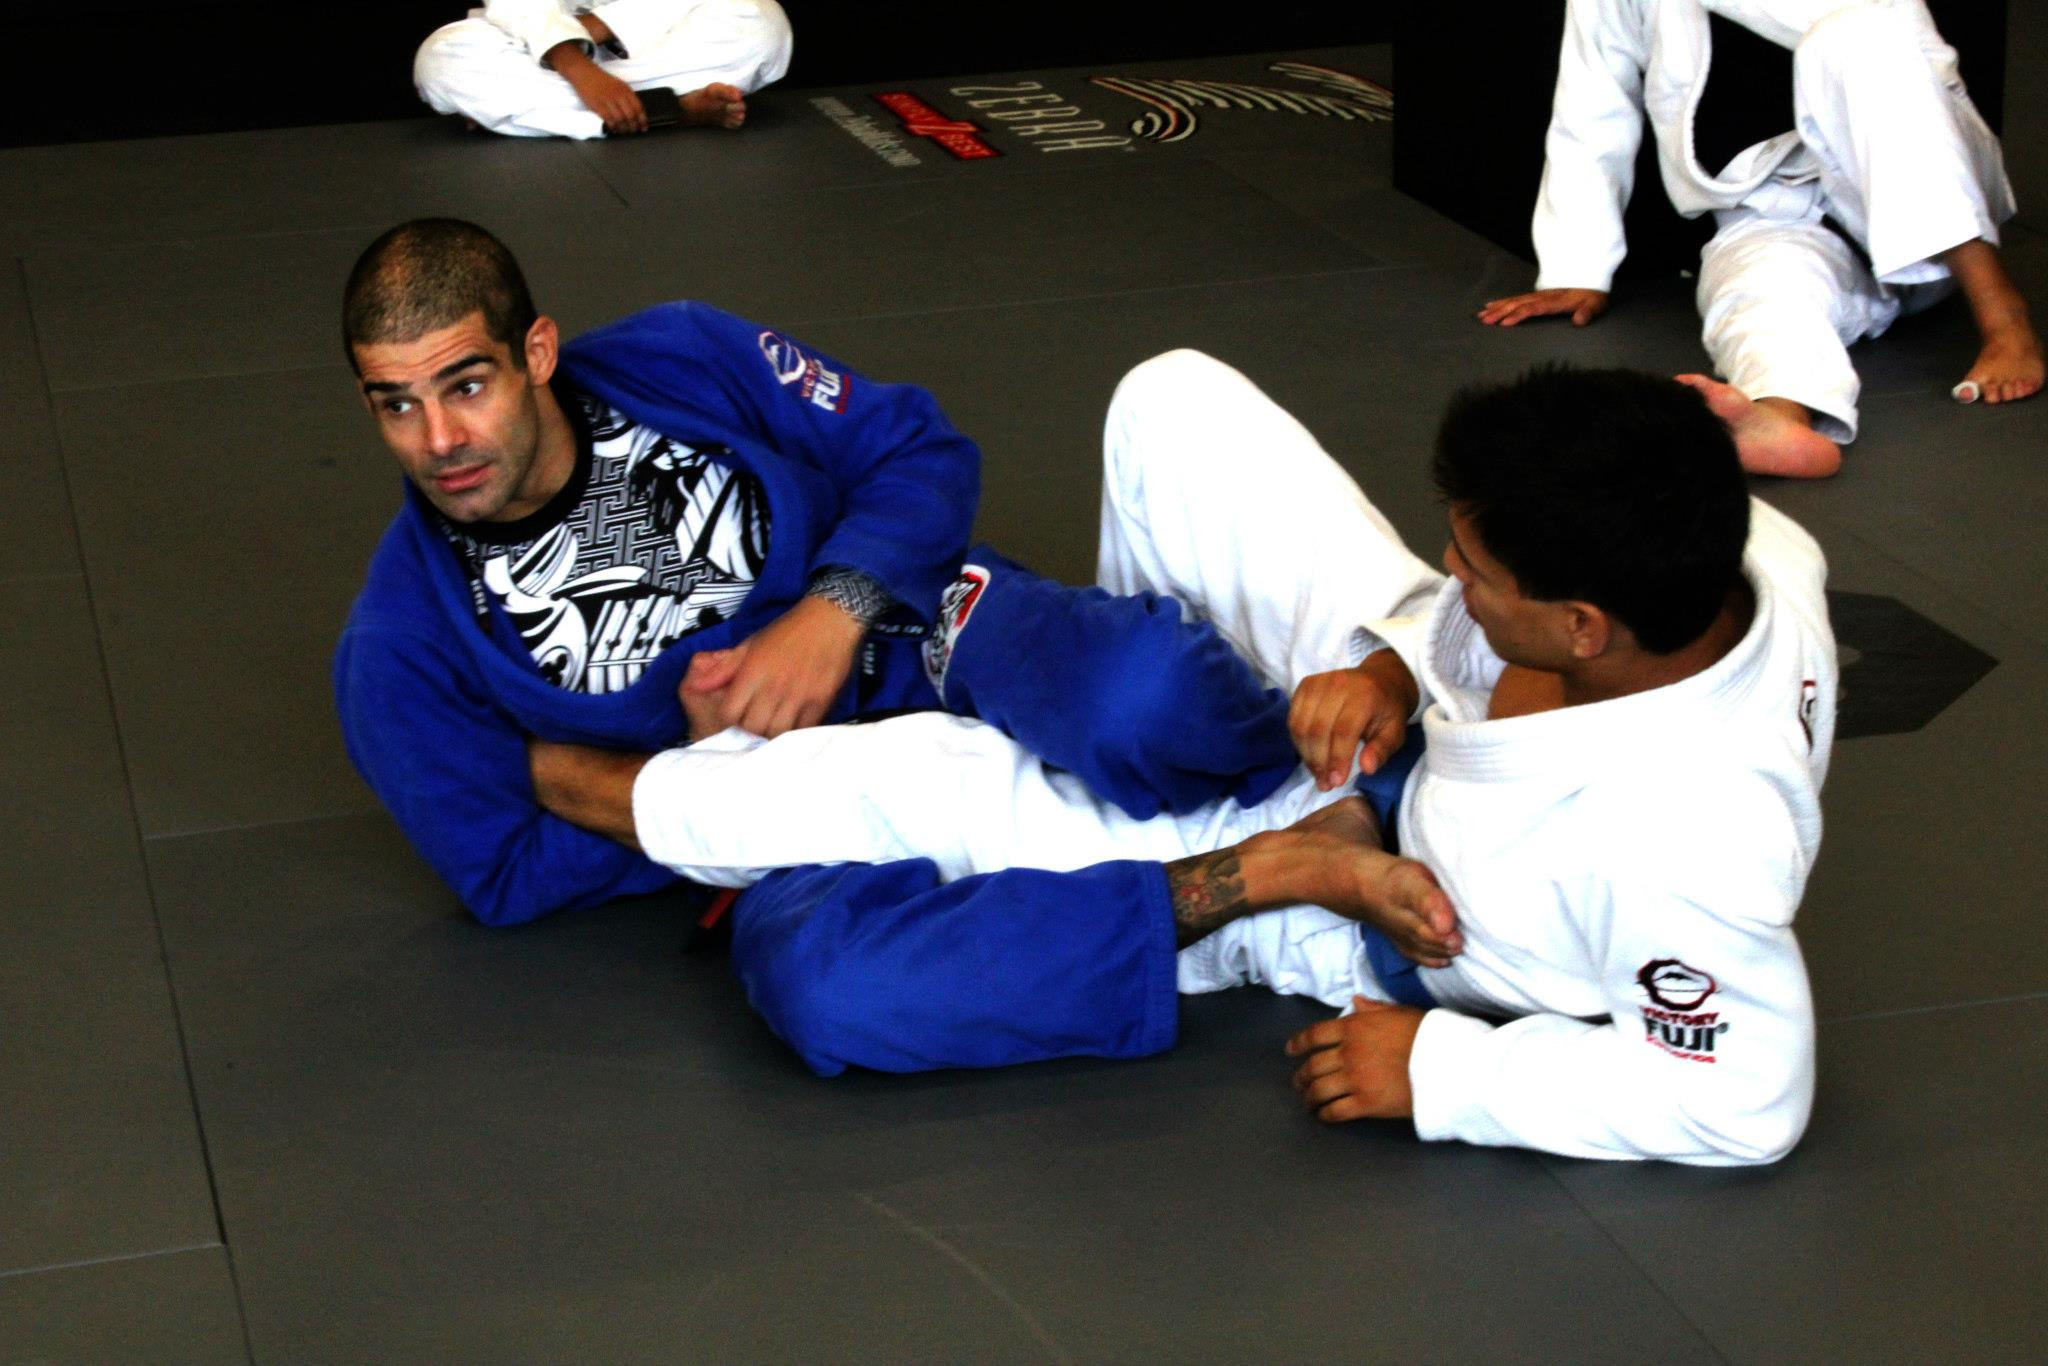 Ezekiel Zayas: 'Spain Has a Top European Level in BJJ'